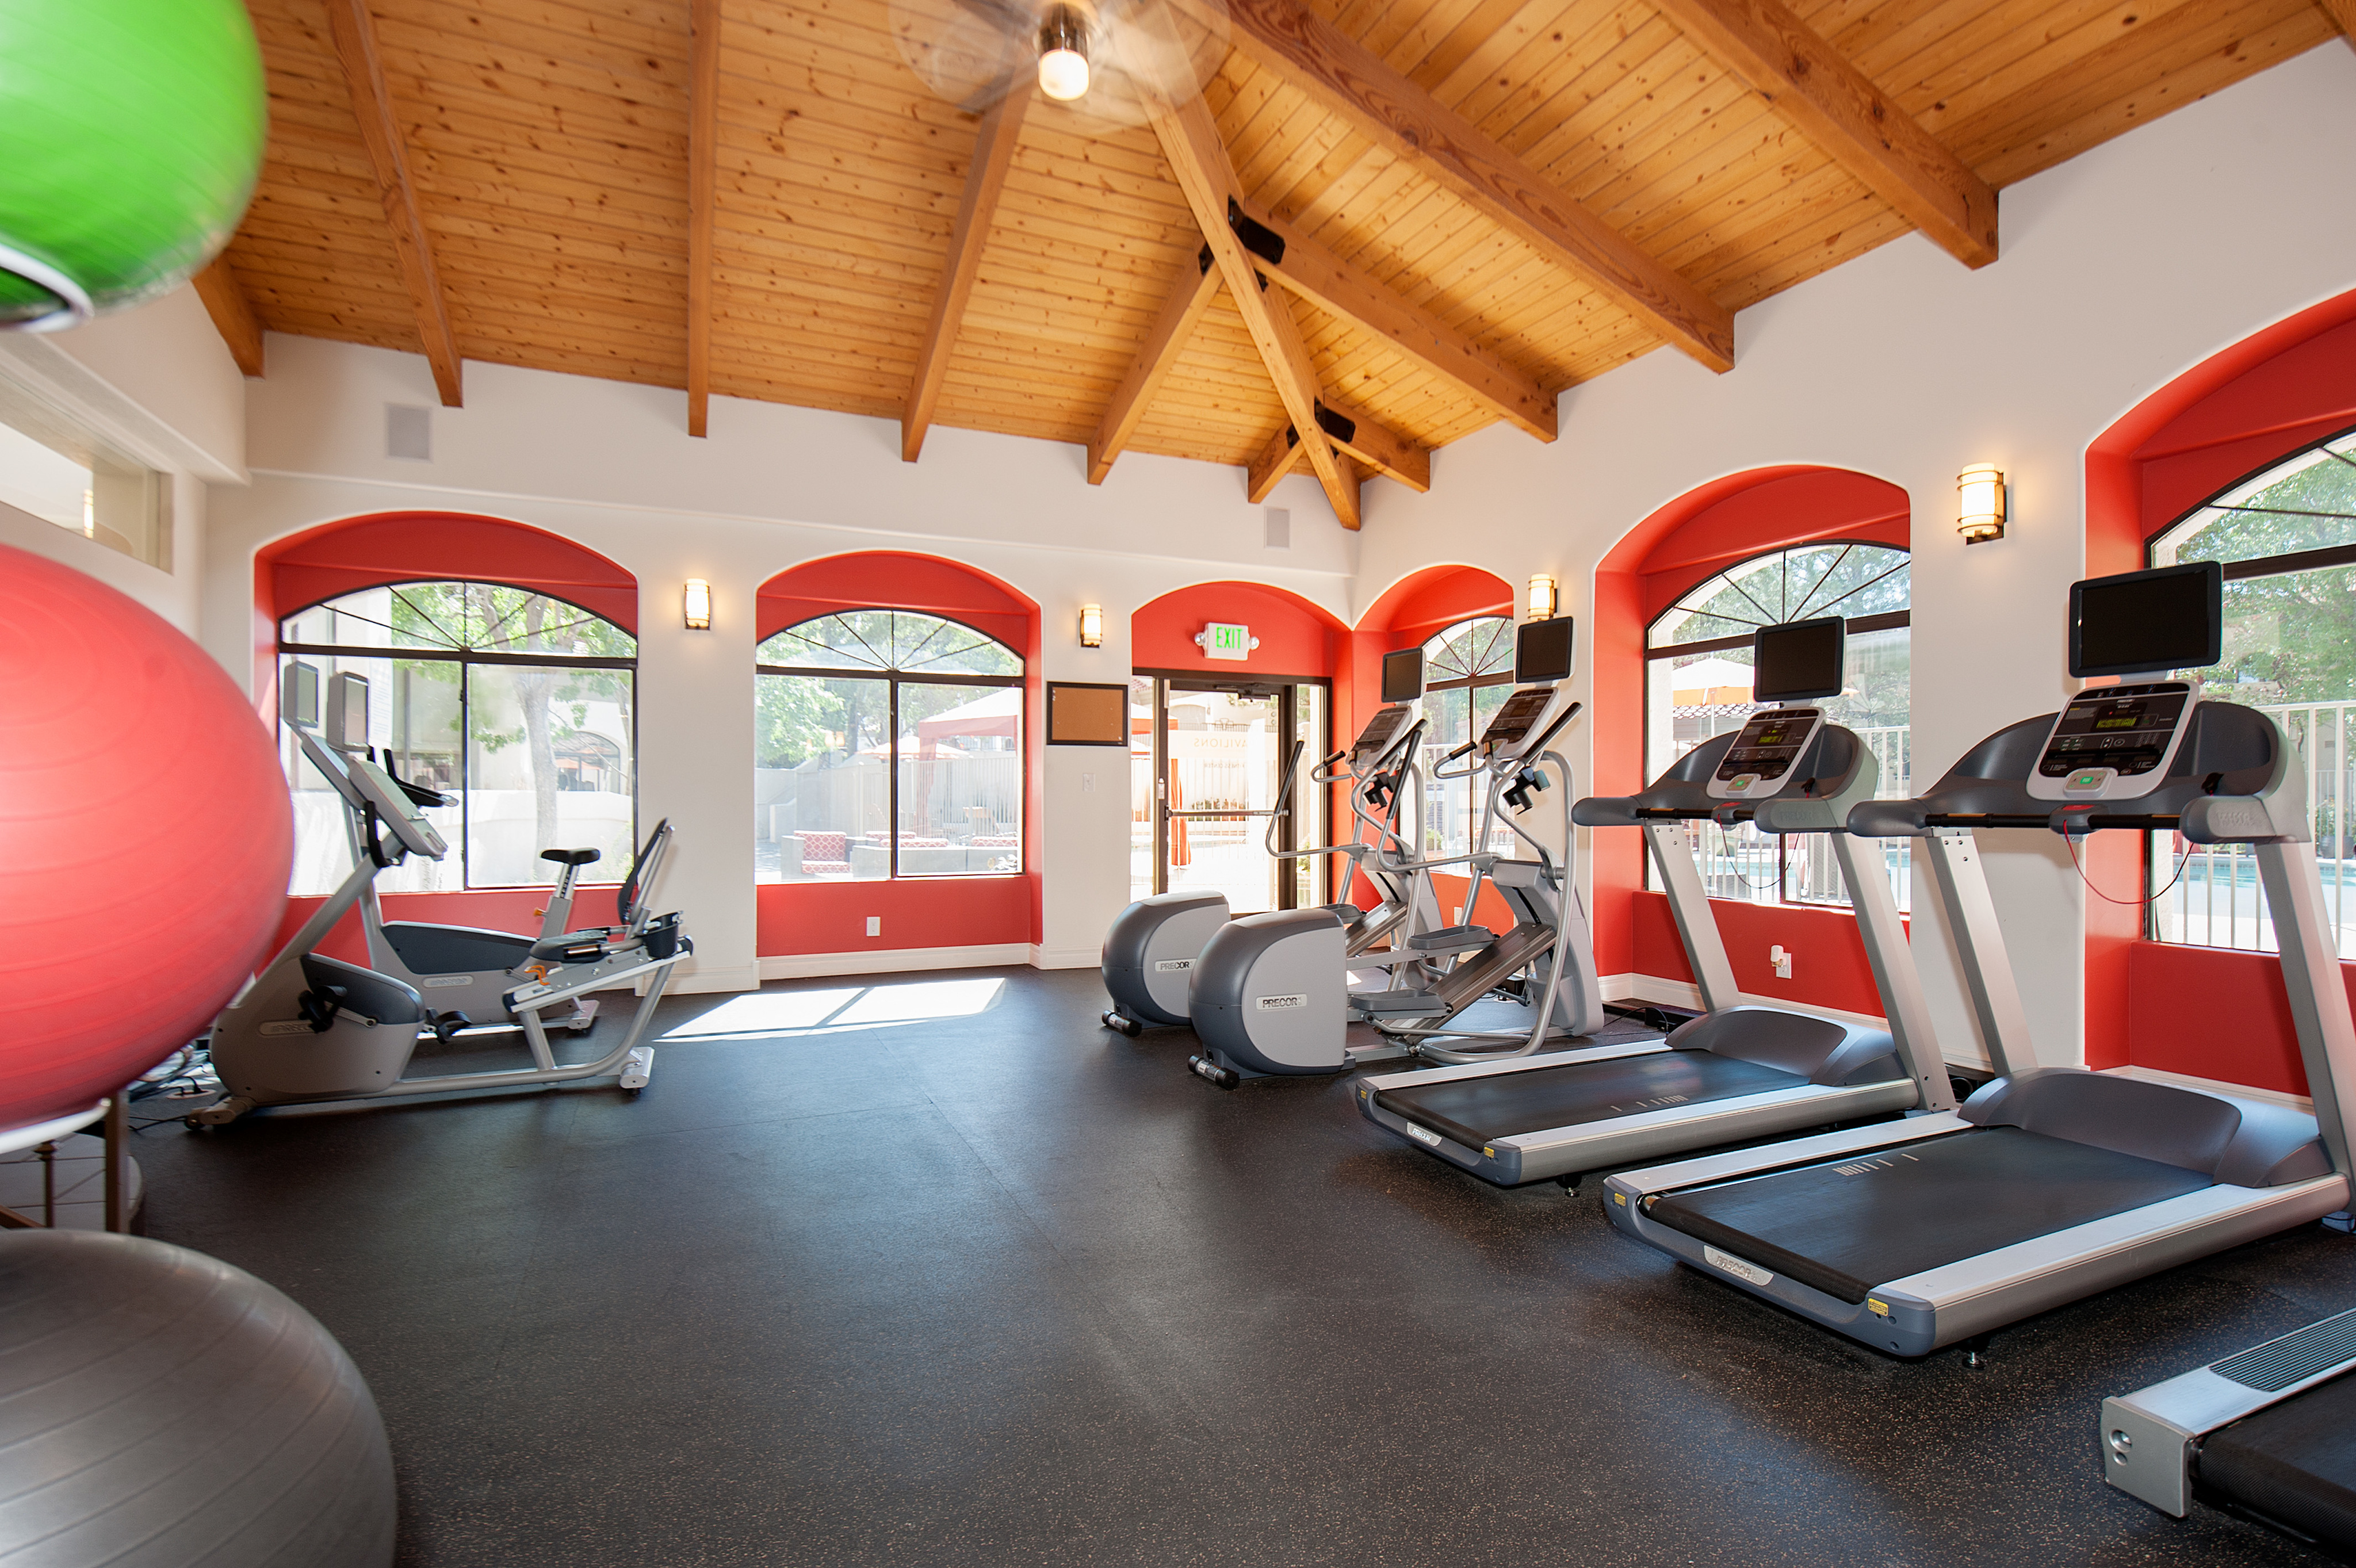 View of Fitness Center, Showing Cardio Equipment, Stability Balls, Ceiling Fan, and Wall of Windows at Pavilions Apartments